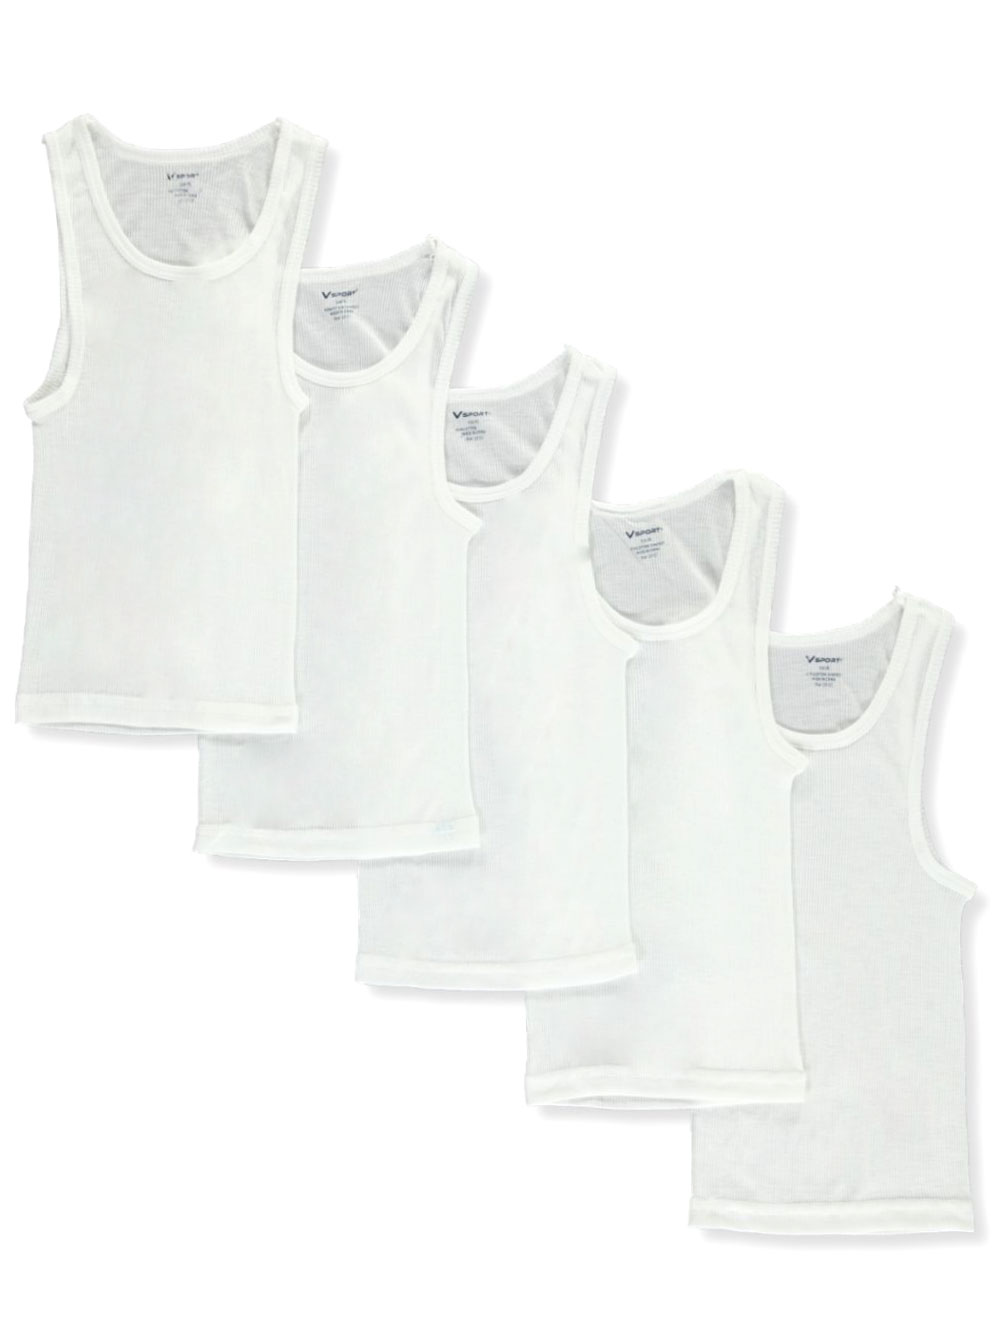 Boys' 5-Pack Ribbed A-Line Tank Tops